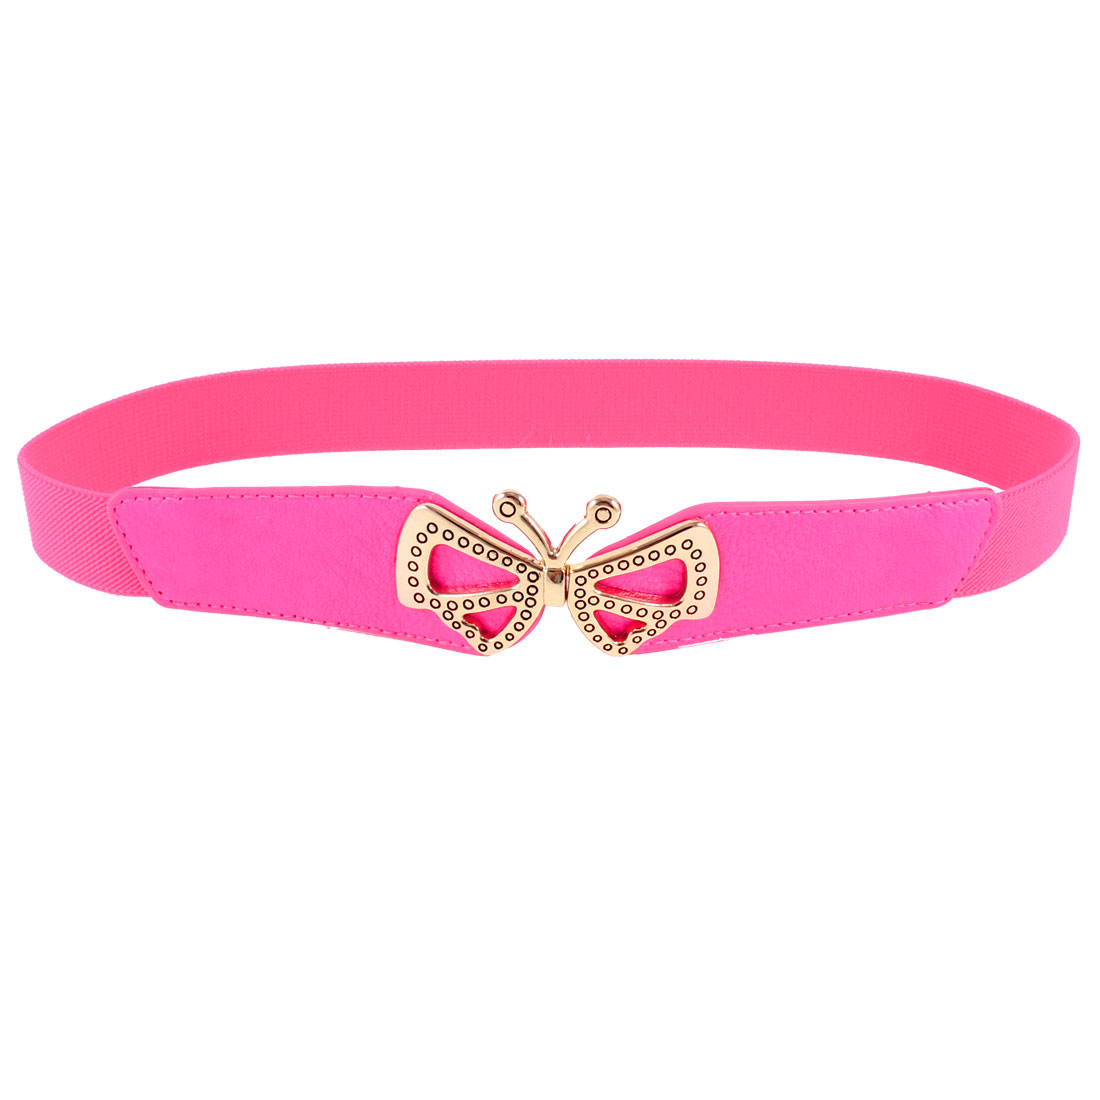 Ladies Butterfly Shaped Metal Interlocking Buckle Stretchy Waist Belt Hot Pink